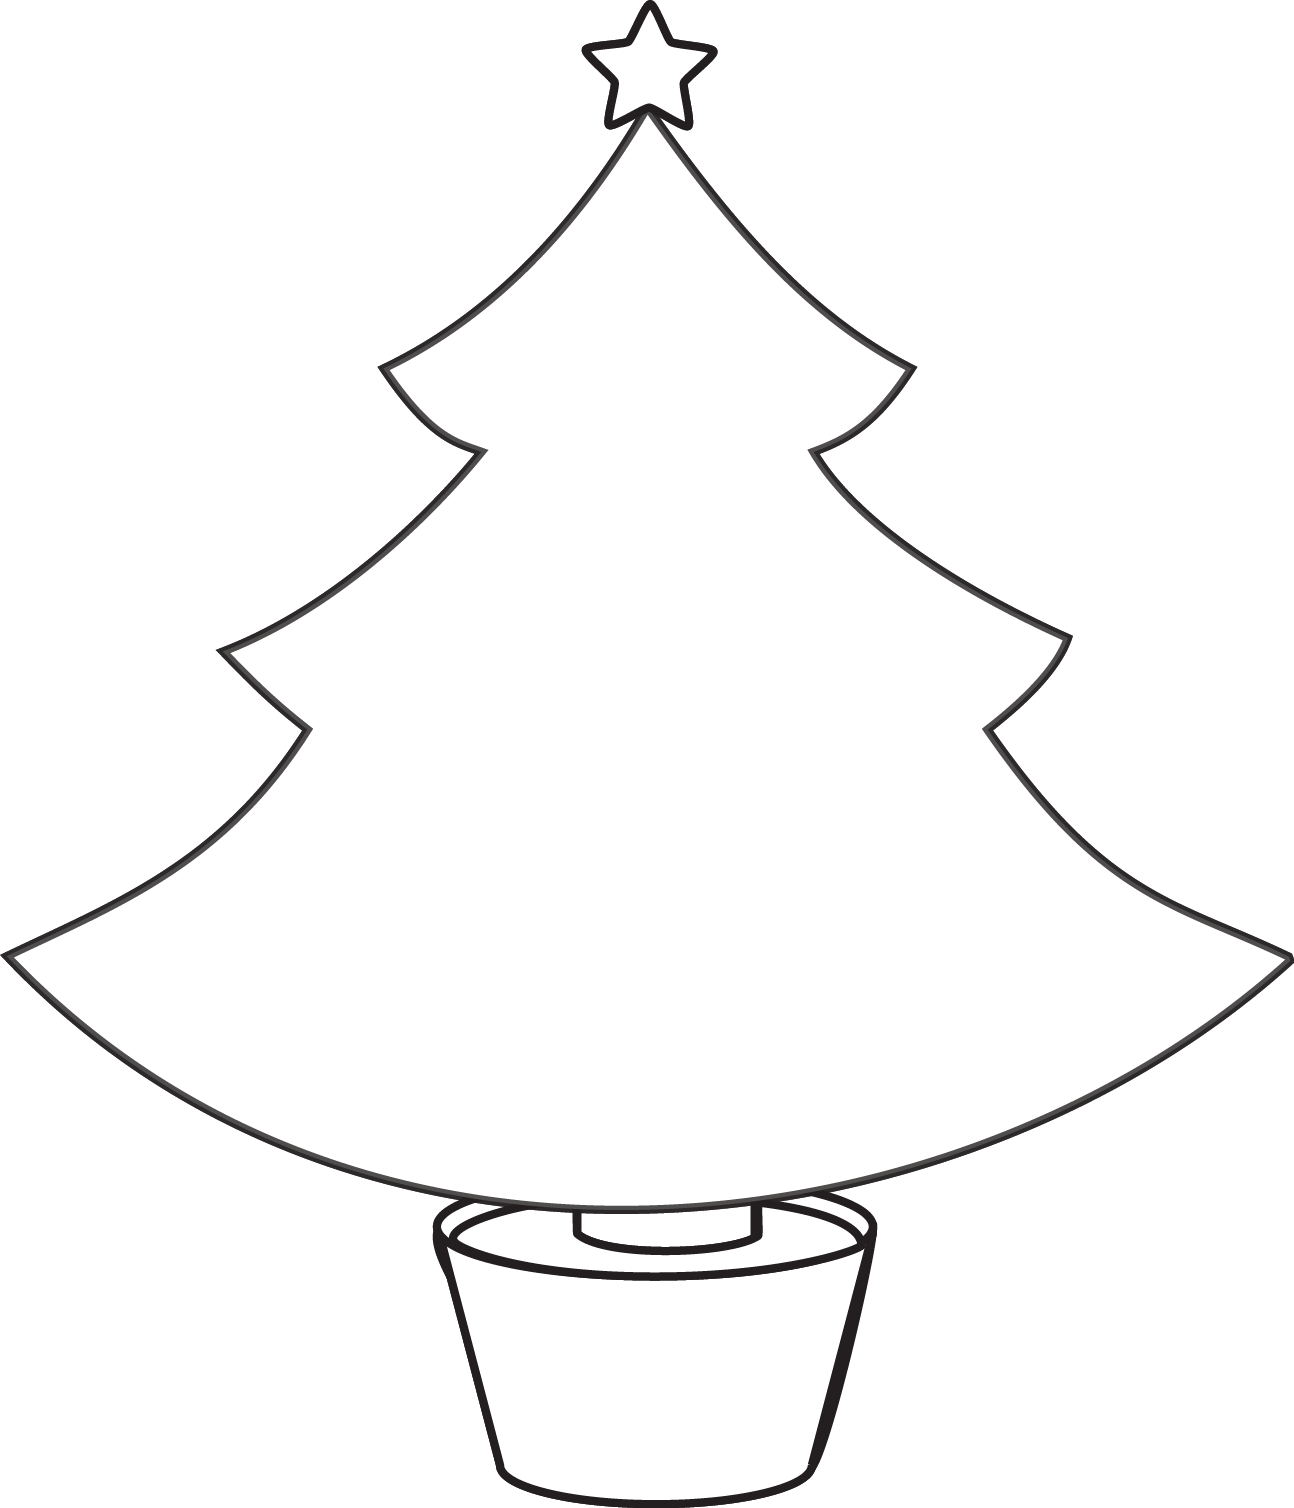 Xmas Tree Drawing at GetDrawings.com | Free for personal use Xmas ...